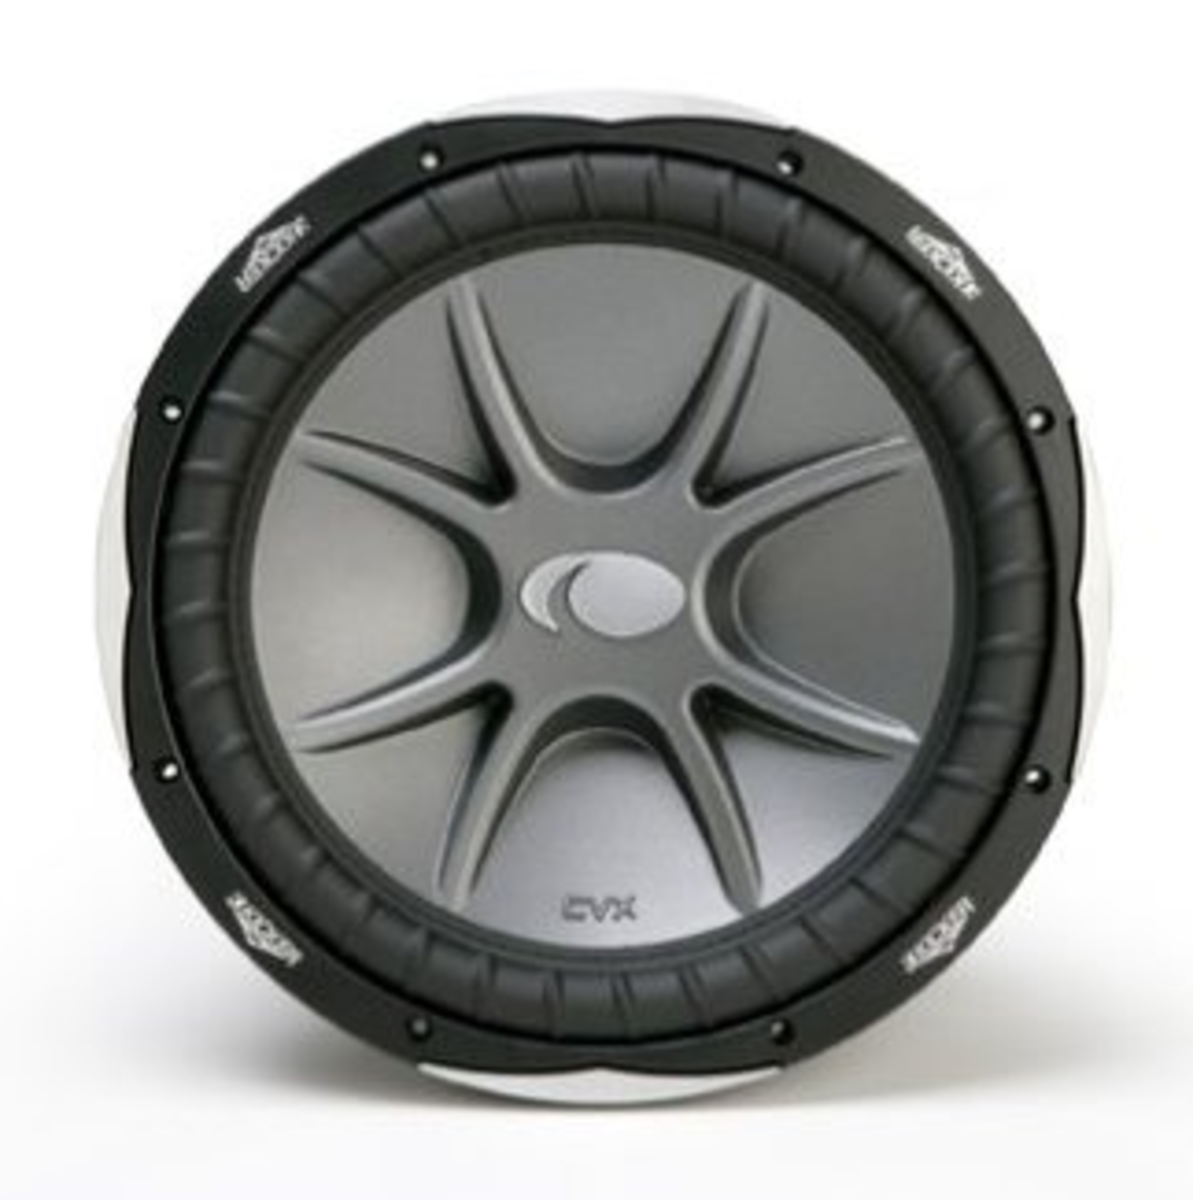 Kicker CompVX 06CVX104 10-Inch 4-Ohm DVC Subwoofer up close